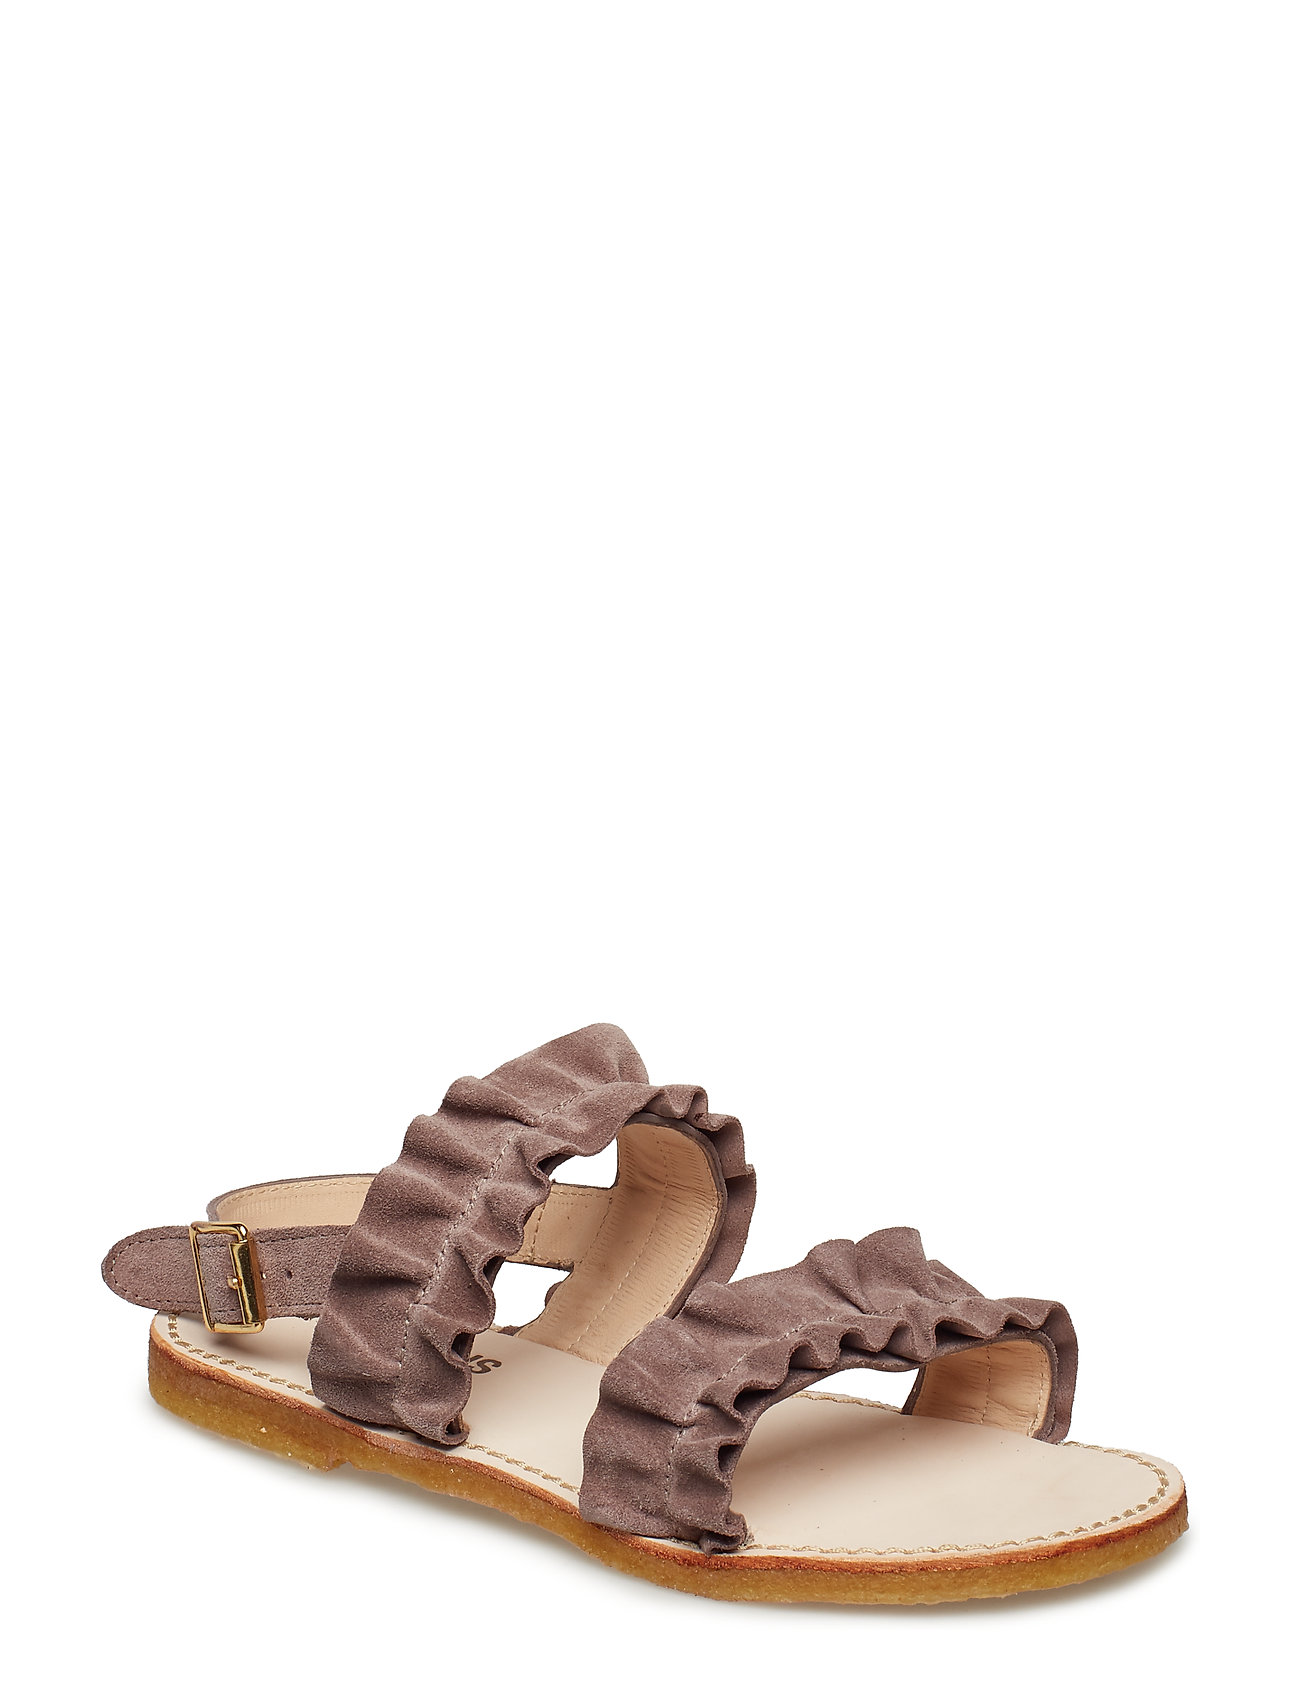 ANGULUS Sandals - flat - open toe - op - 2202 DUSTY LAVENDER